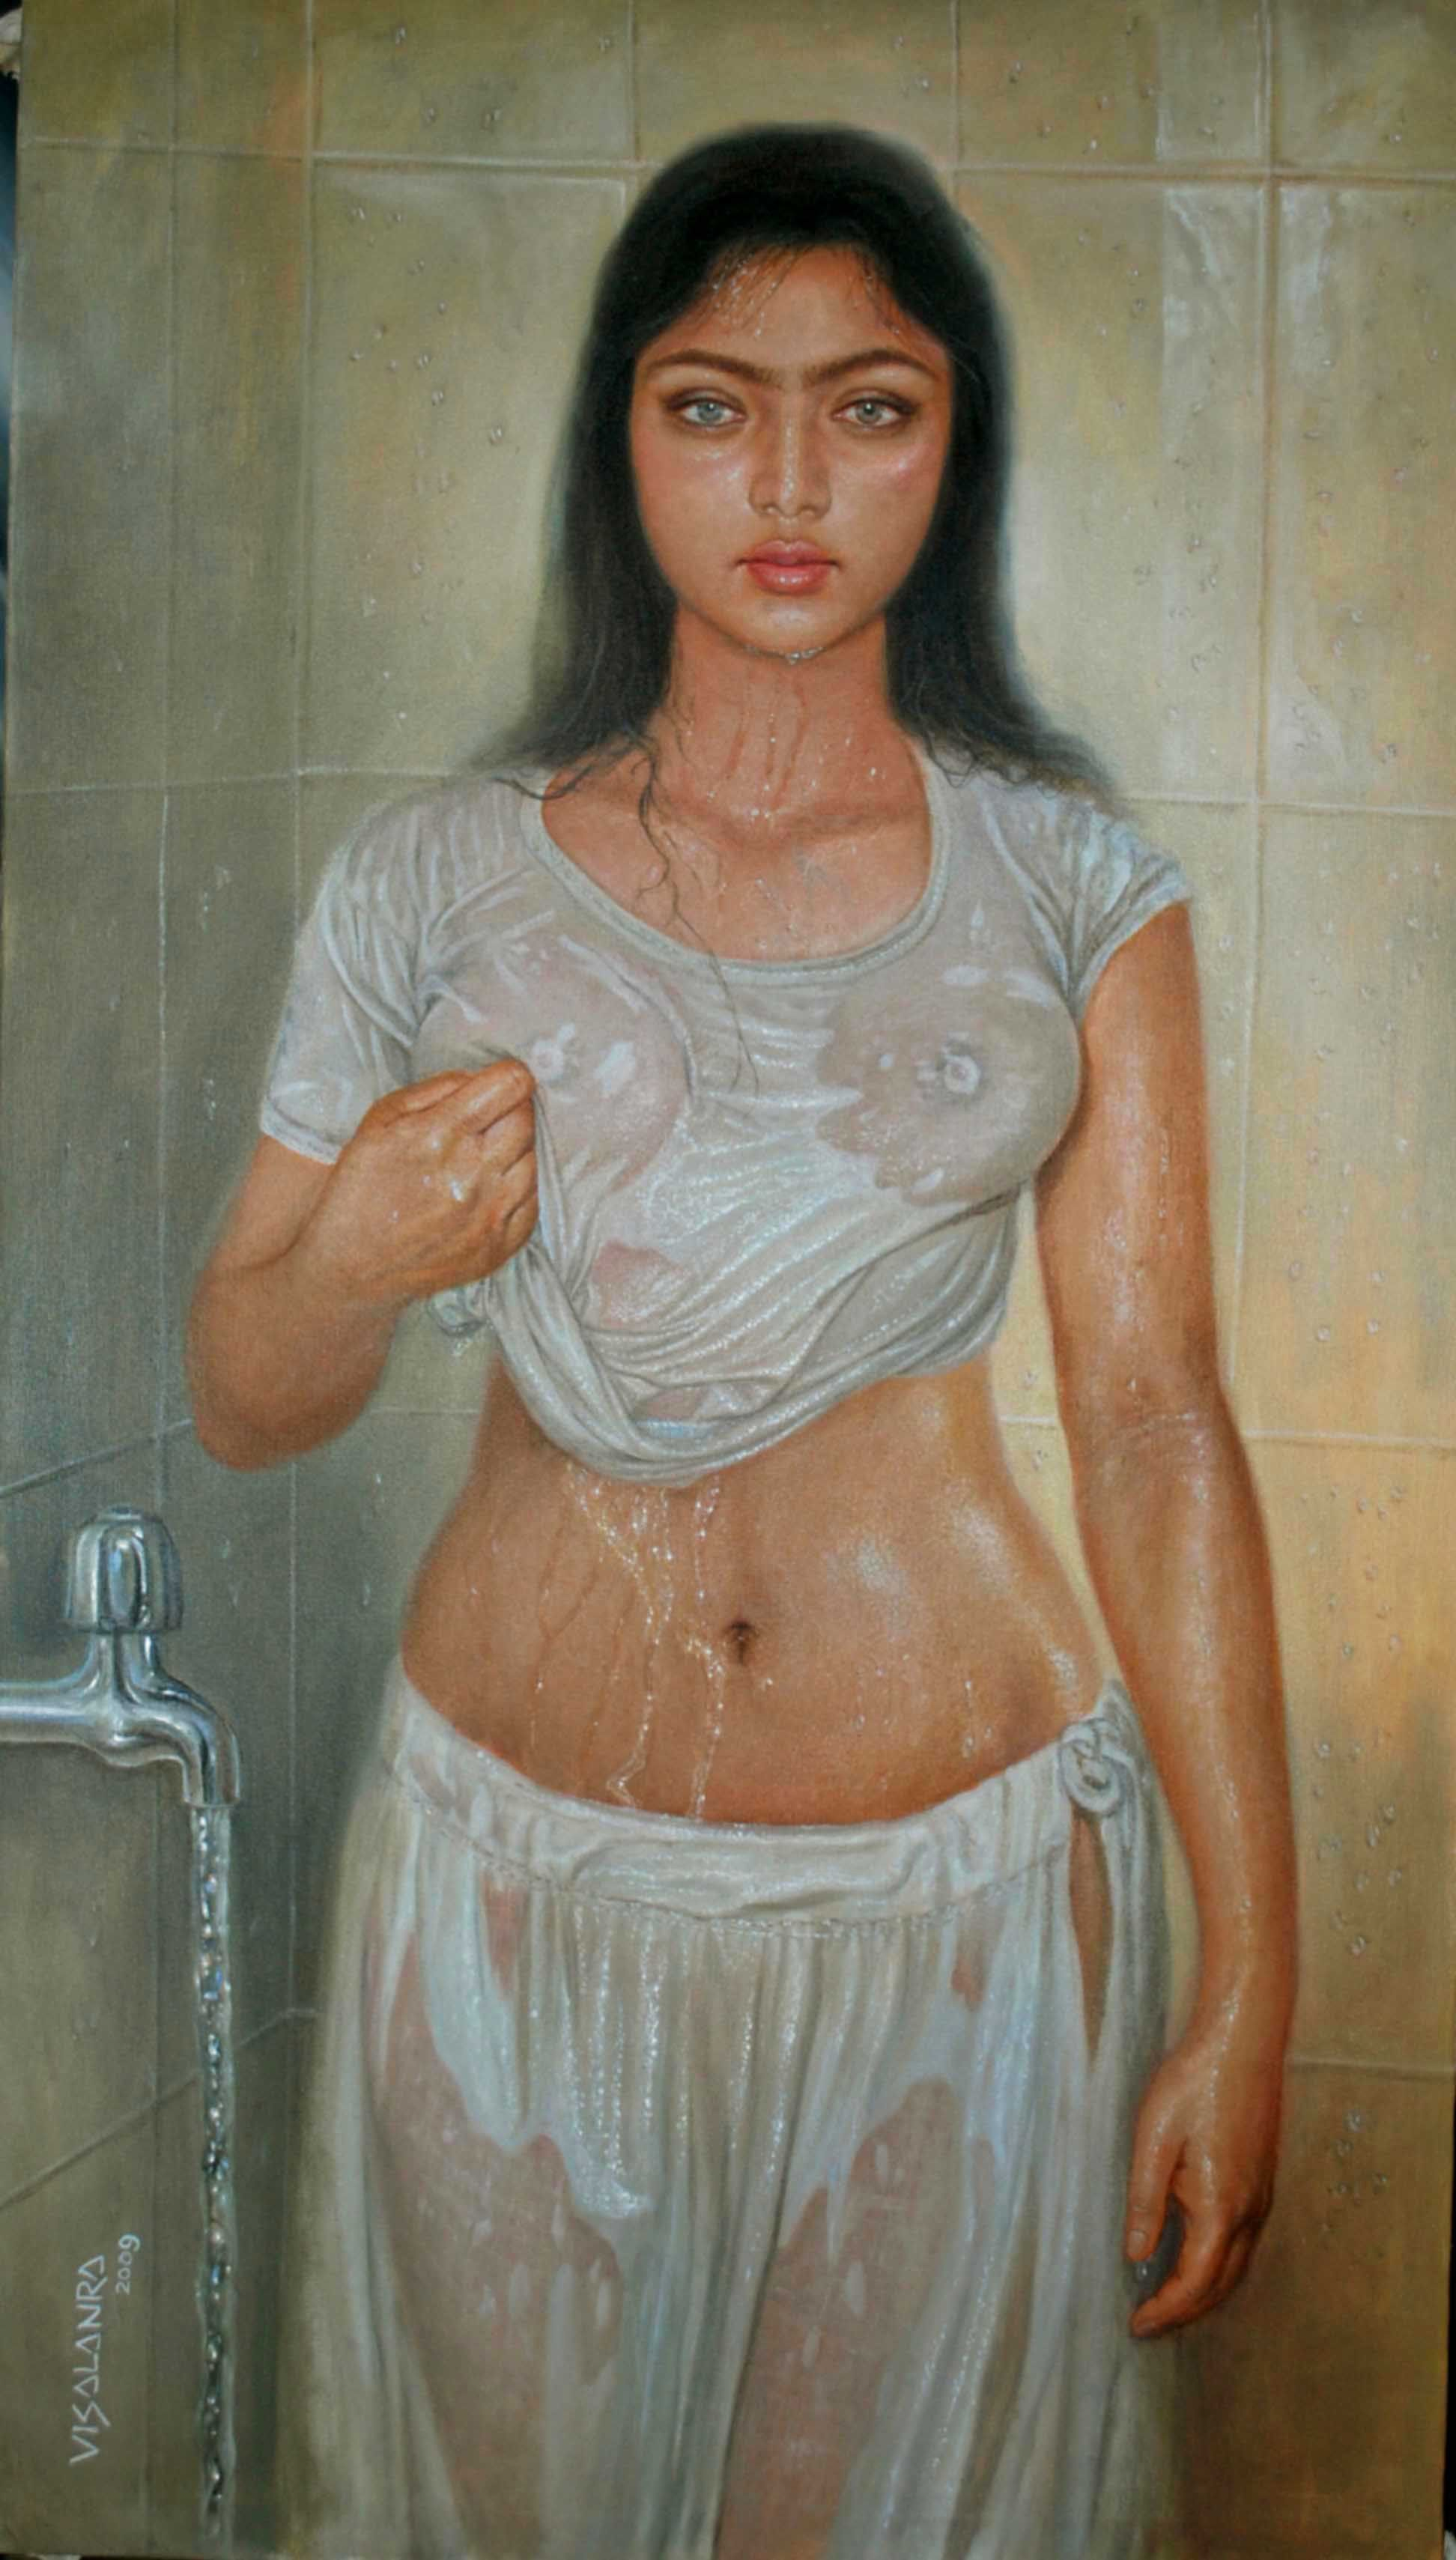 Nude bath indian-1504